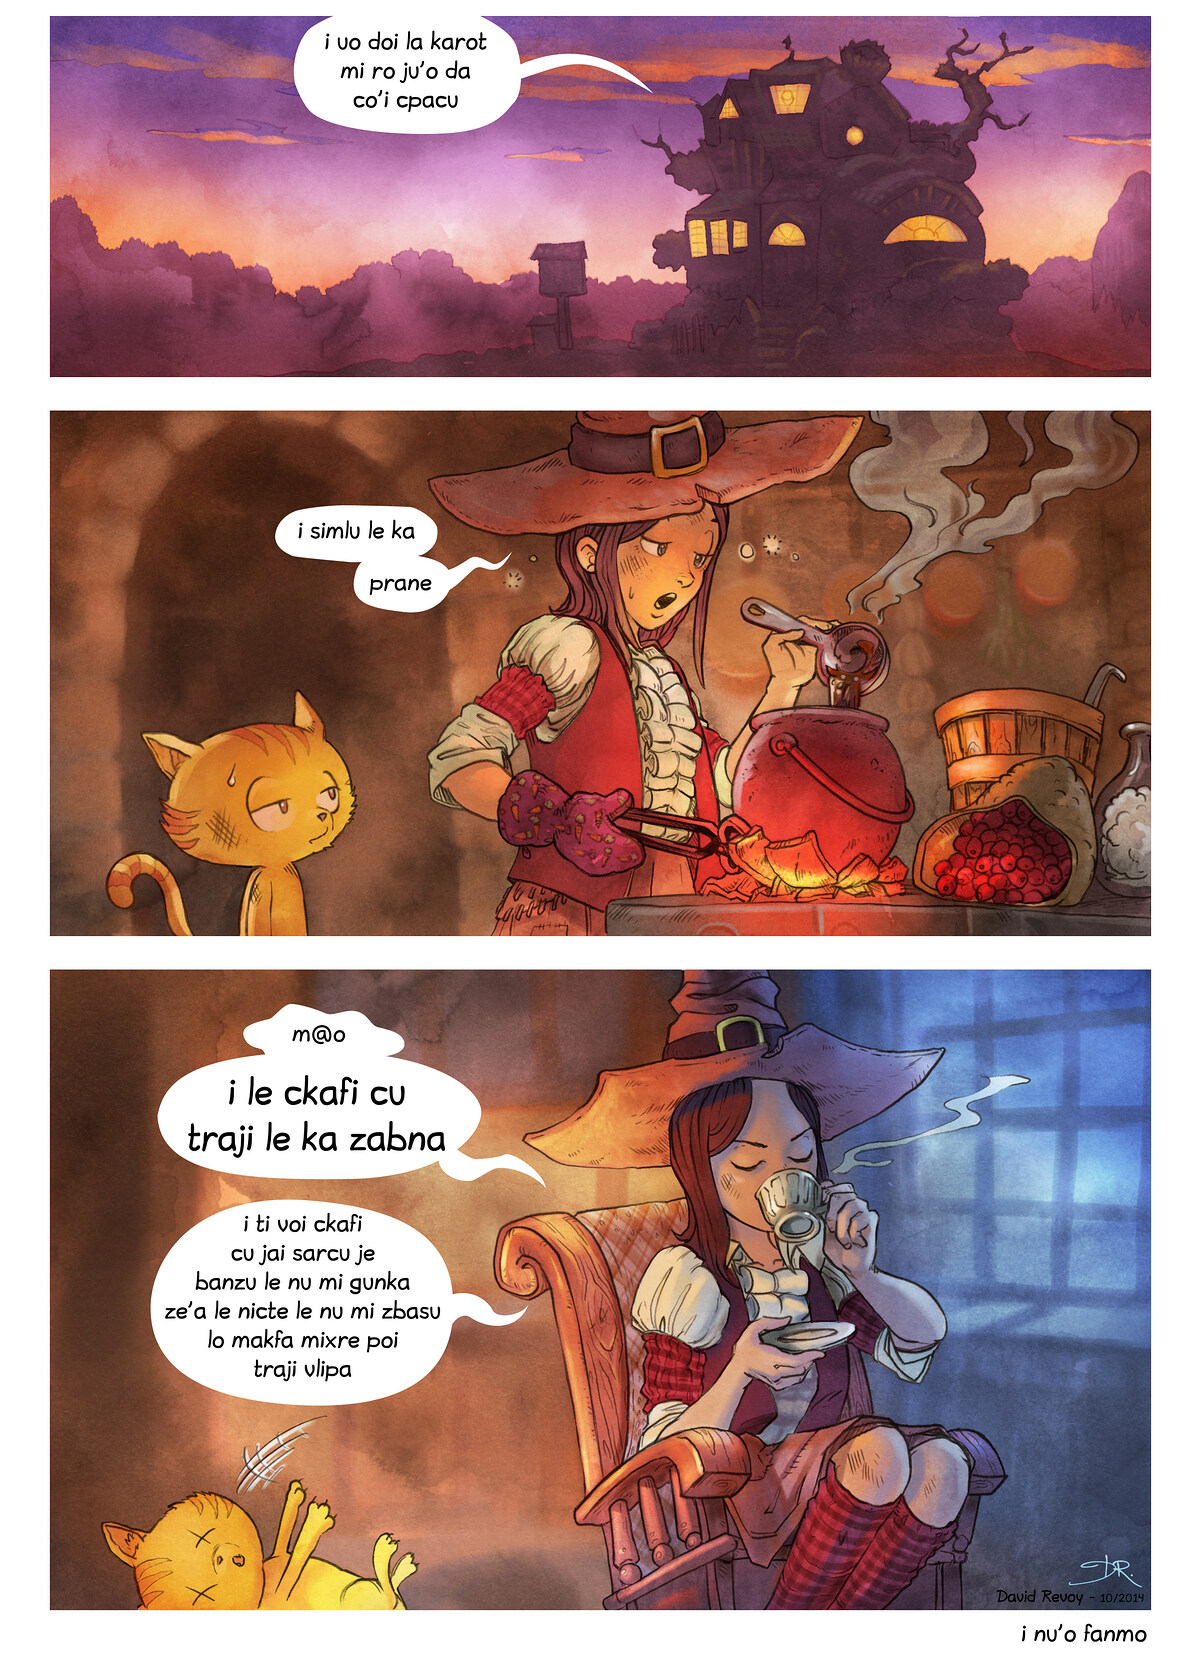 A webcomic page of Pepper&Carrot, pagbu 3 [jb], papri 7